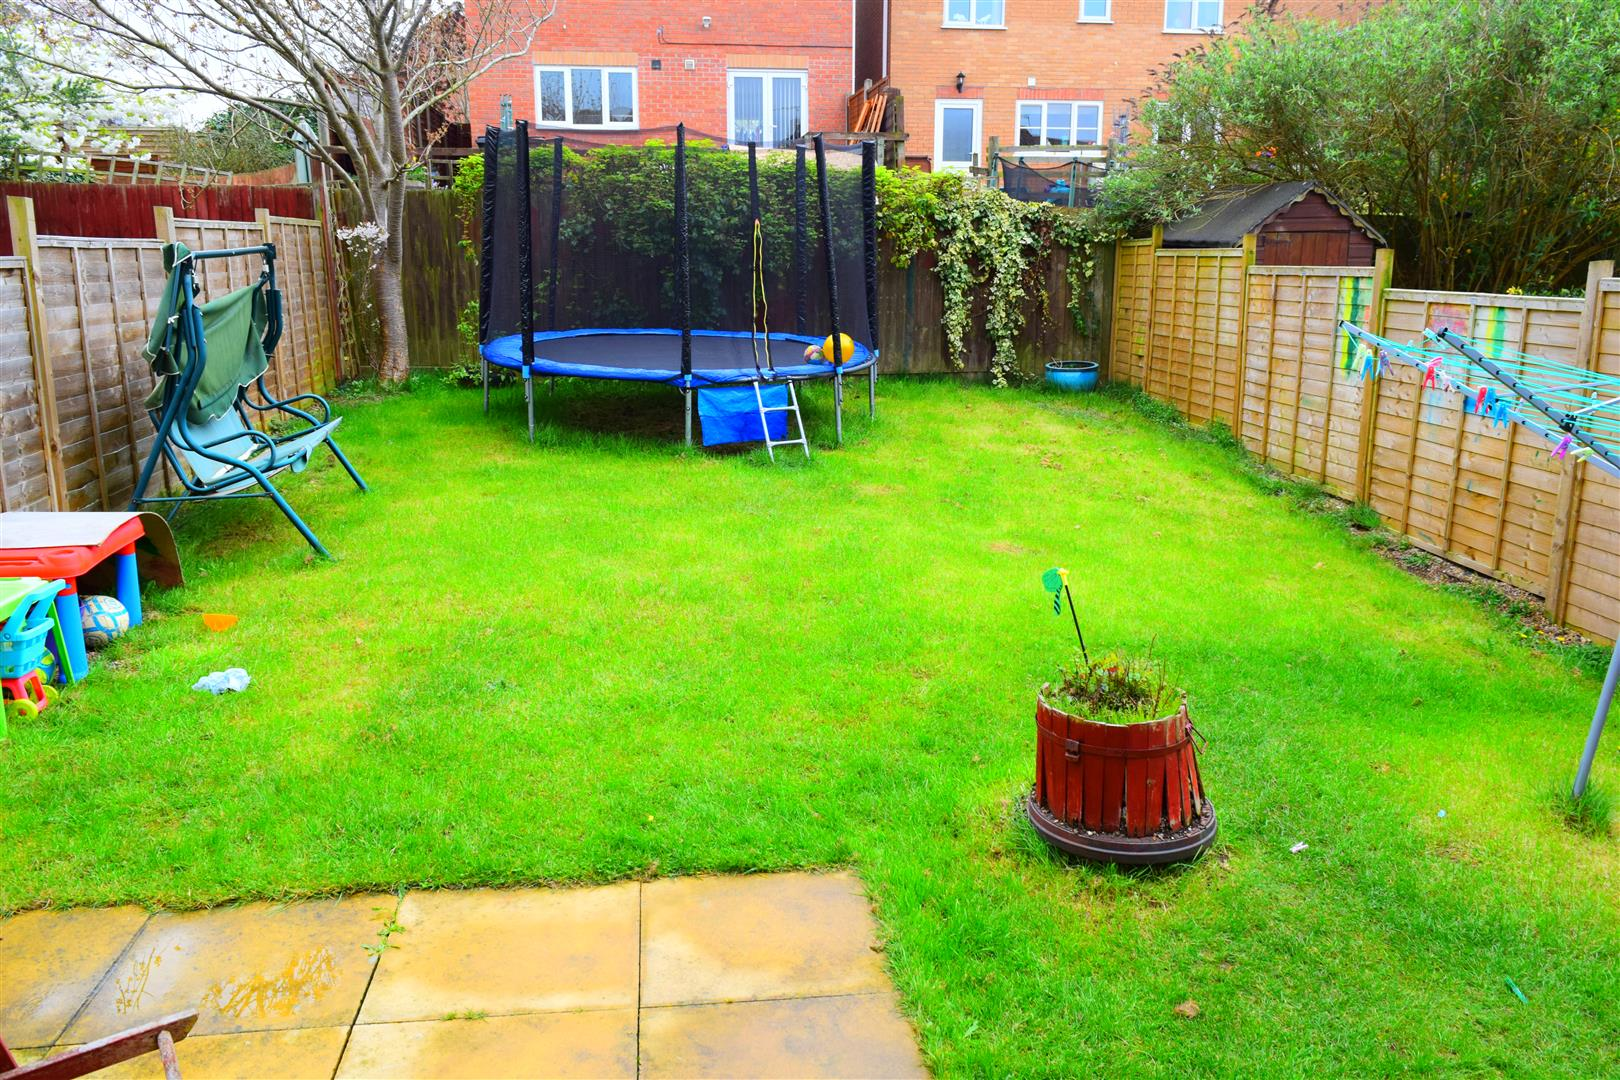 2 Bedroom House For Sale In Northampton